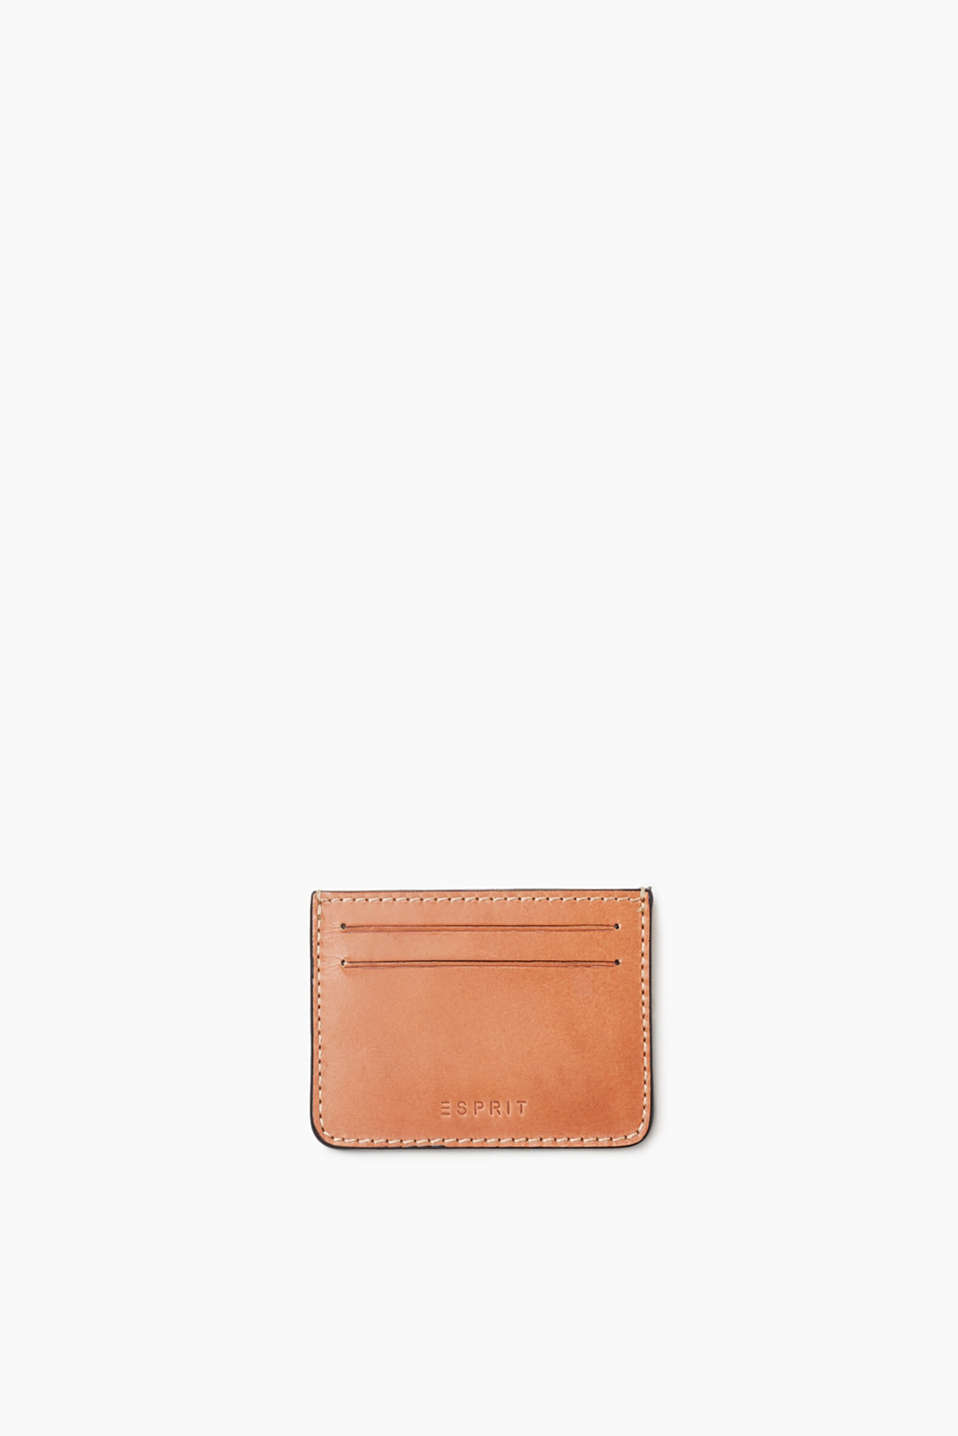 The smooth split cowhide only looks more striking with age – card holder in a compact design.